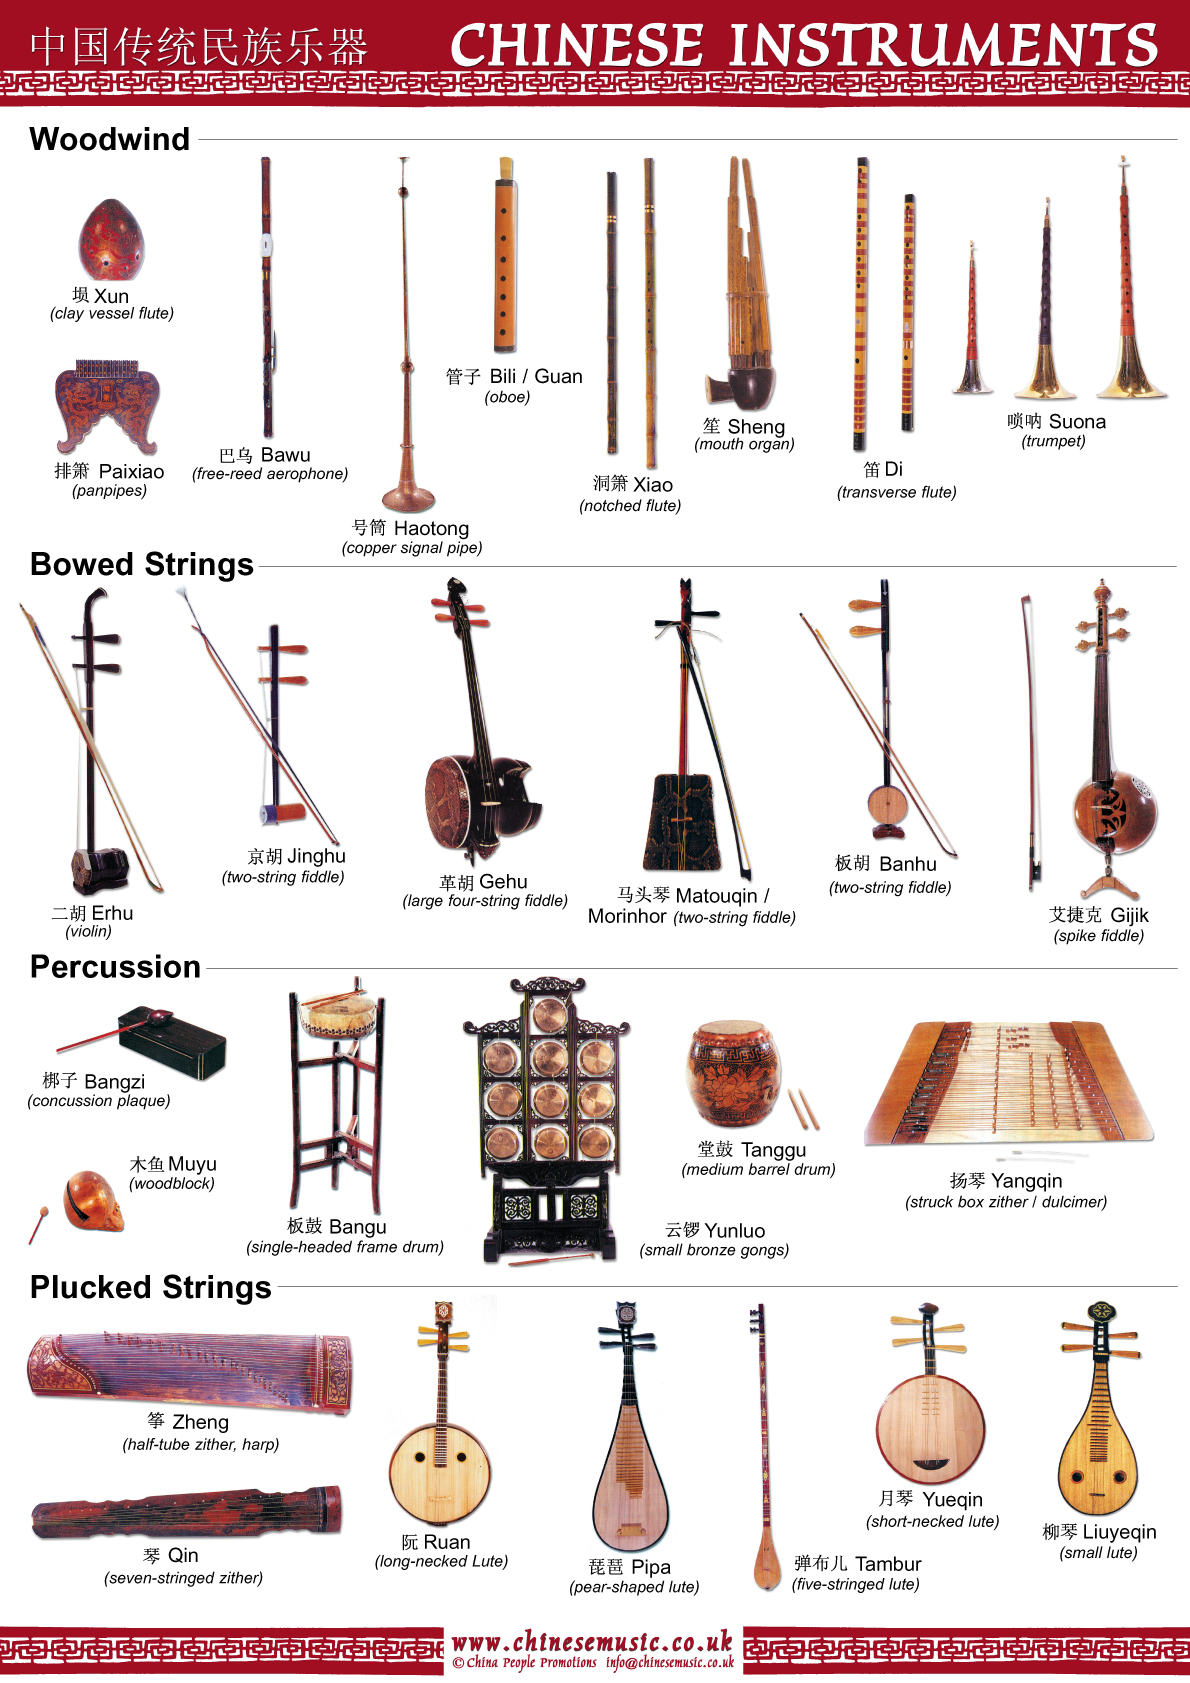 Kwang Jiab Sia The Chinese Instruments Shop